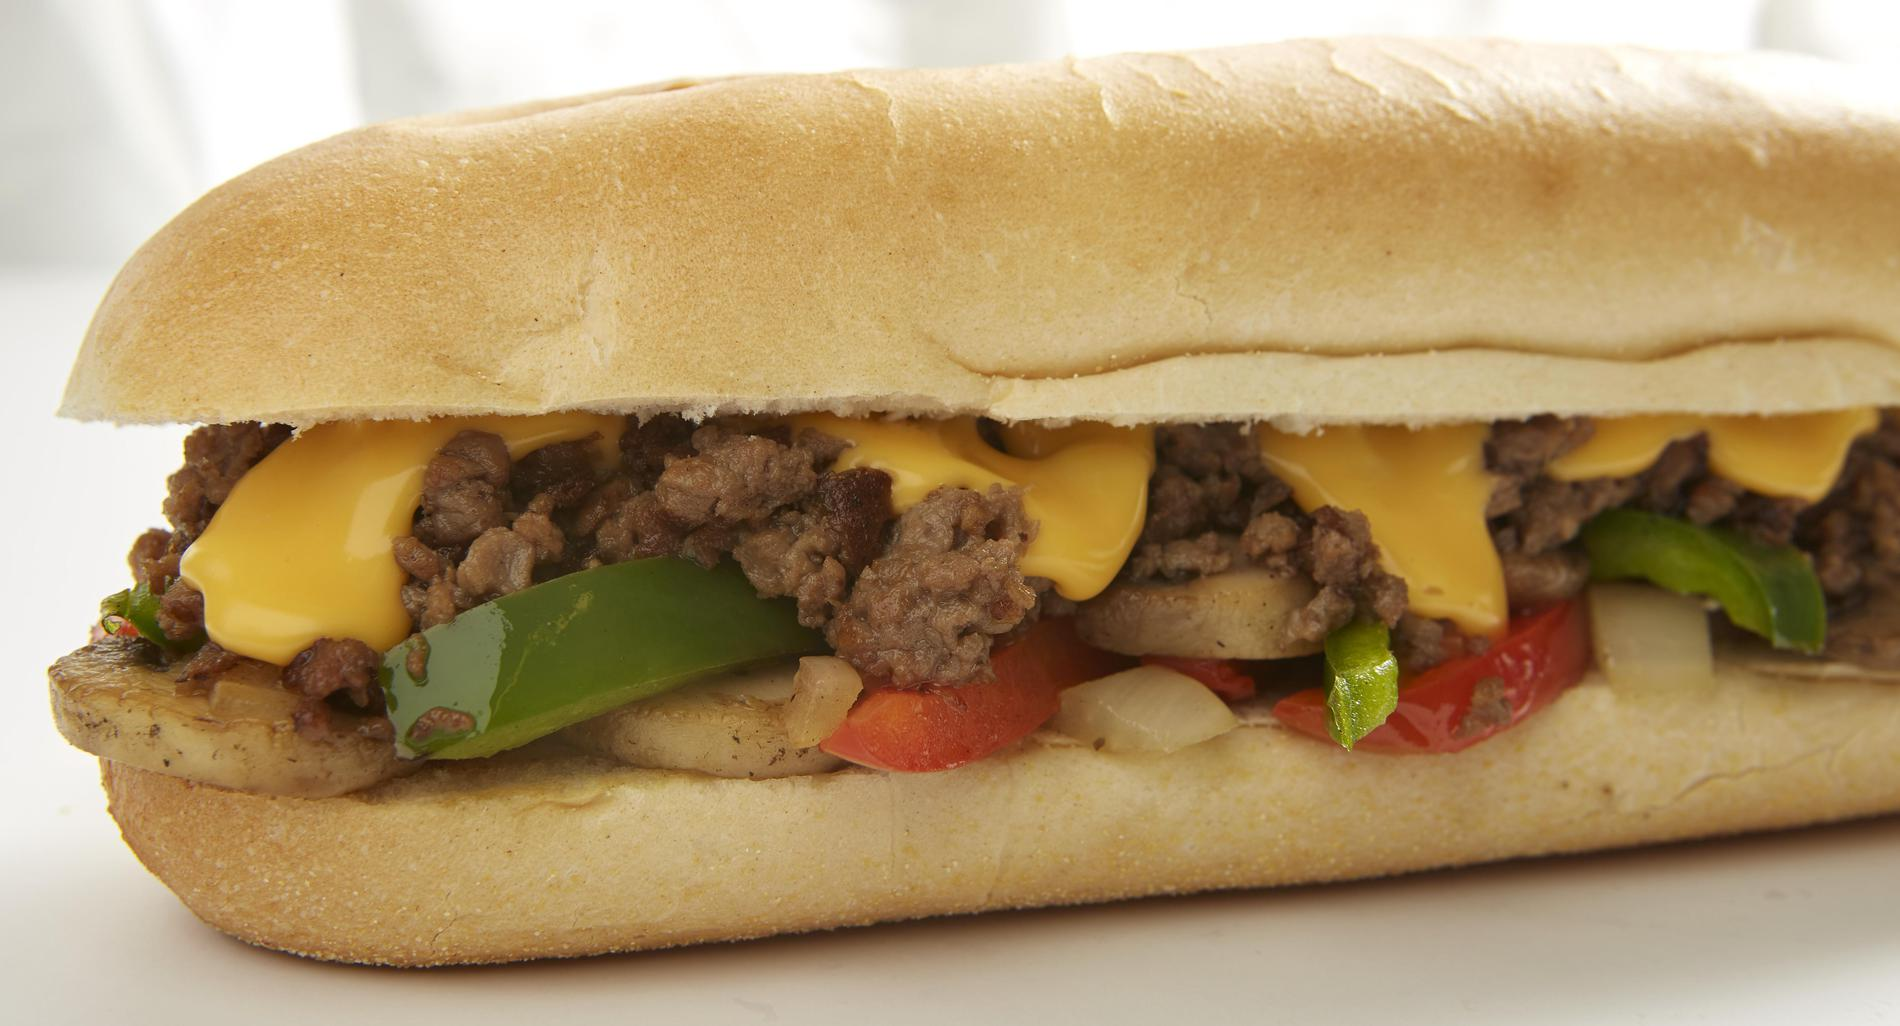 Cheesesteak sandwich with Impossible meat made from plants, mushrooms, onions, peppers & Cheez Whiz